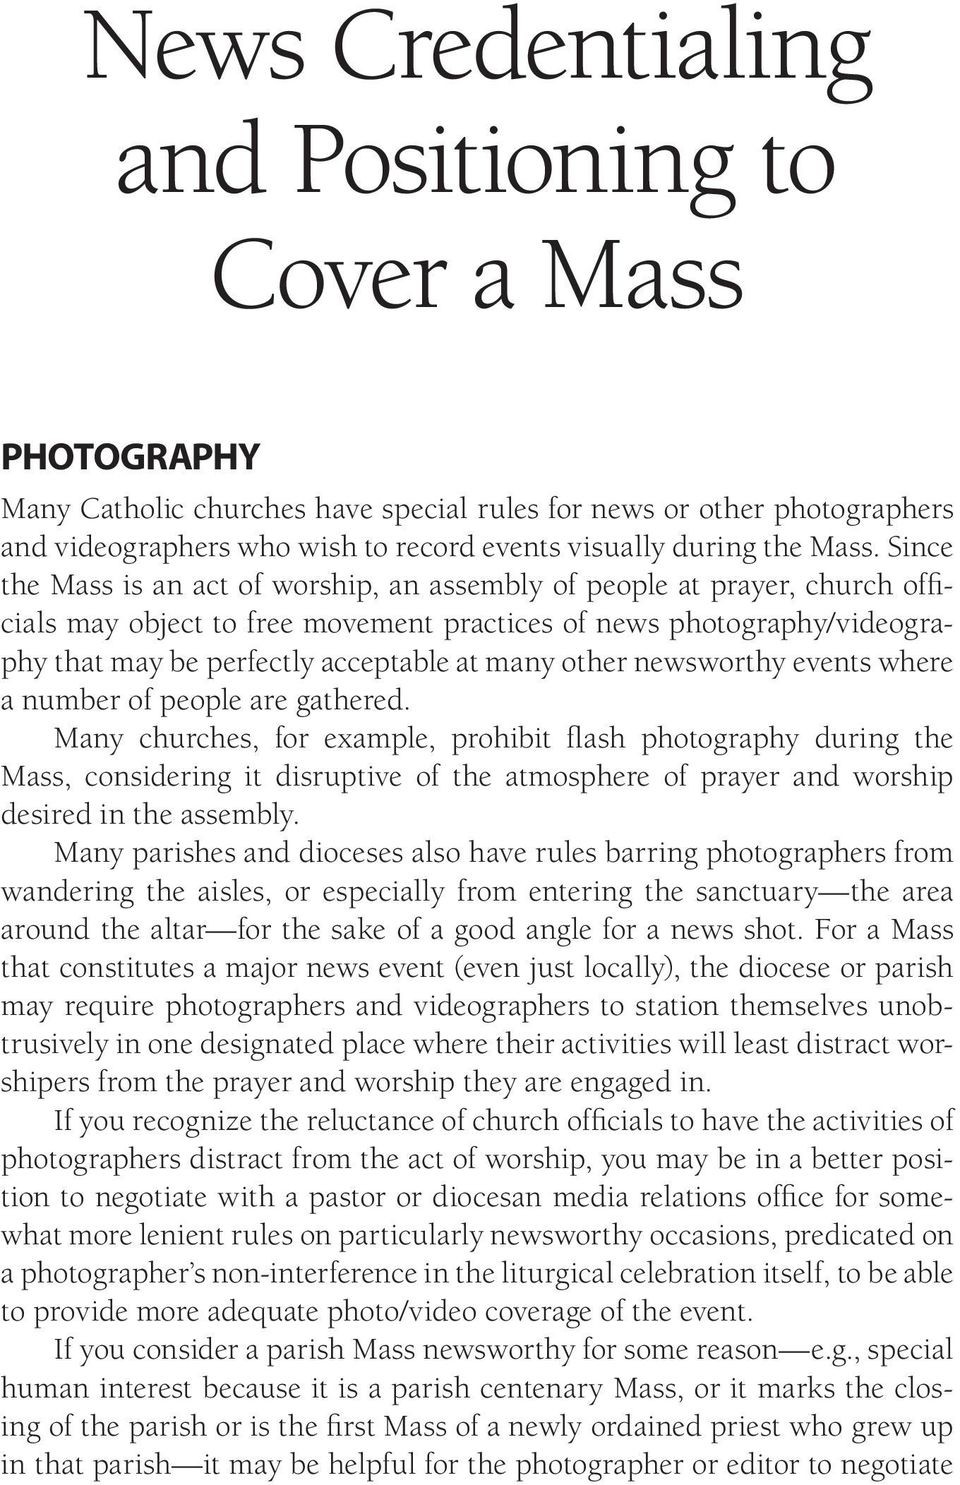 Since the Mass is an act of worship, an assembly of people at prayer, church officials may object to free movement practices of news photography/videography that may be perfectly acceptable at many